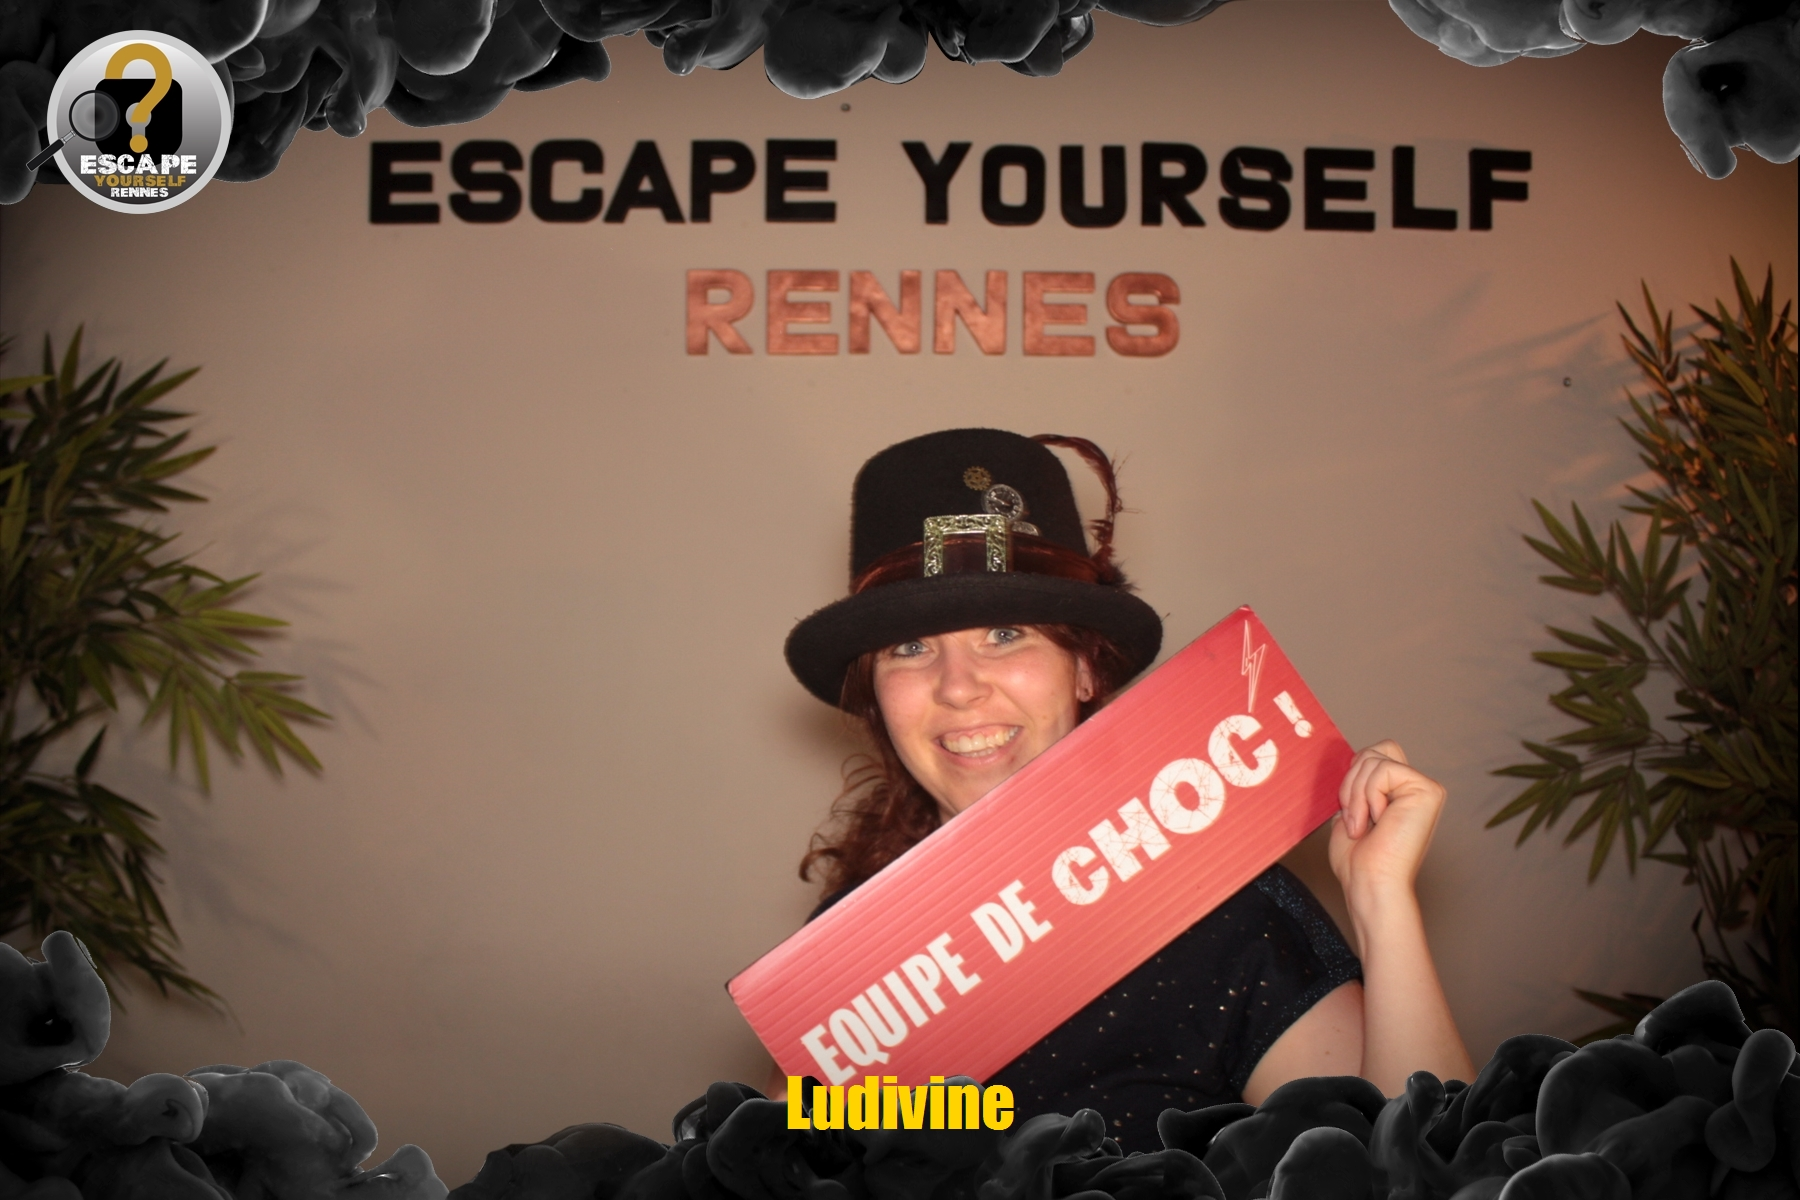 Ludivine Escape Yourself